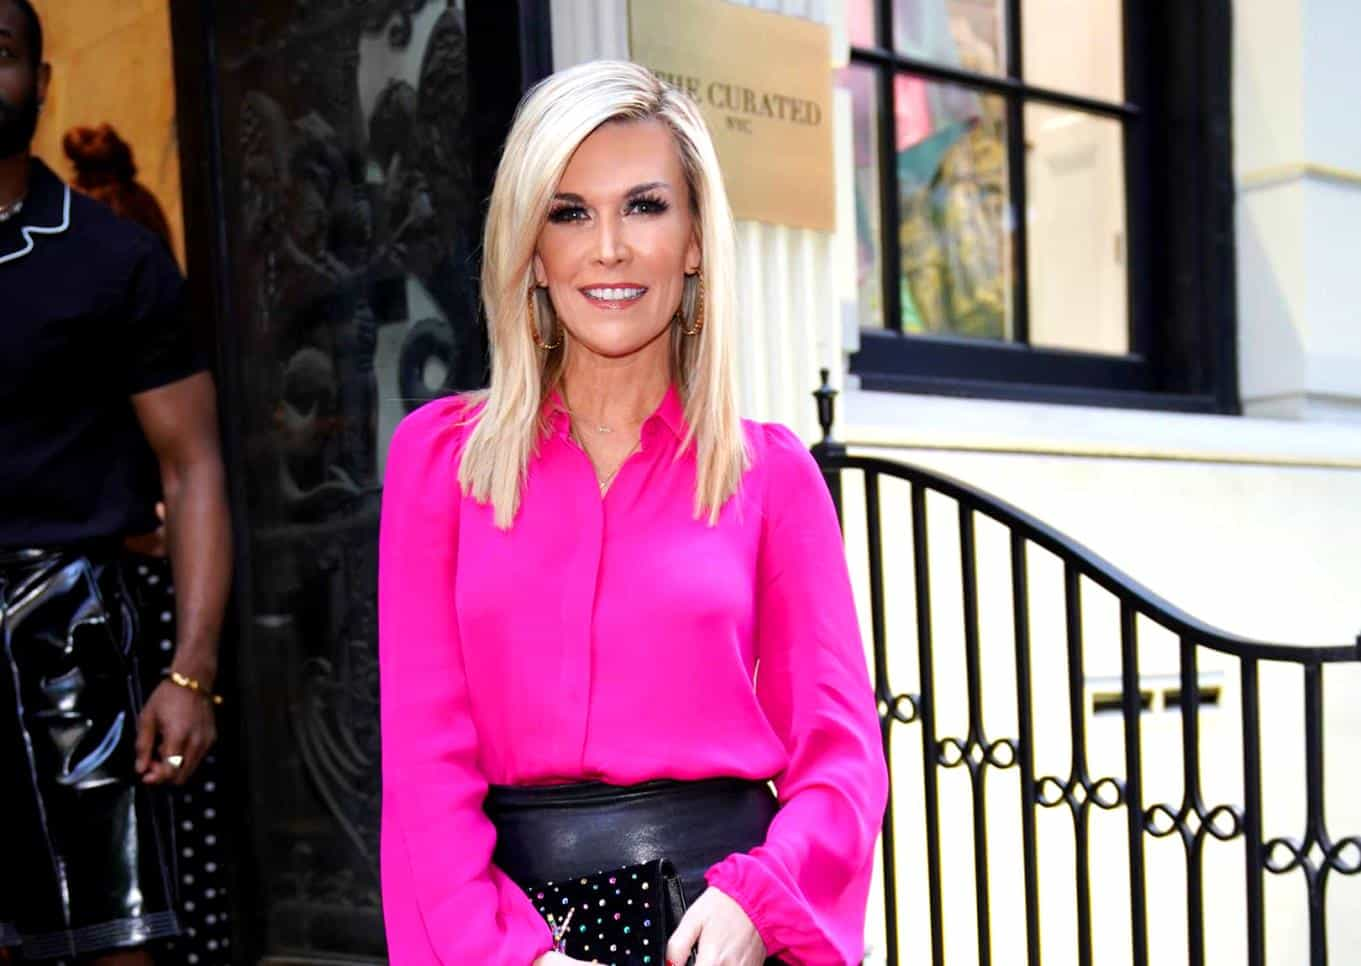 Has Tinsley Mortimer Quit RHONY? She Skips Cast Trip to Mexico Amid Rumors She's Moving to Chicago After Engagement